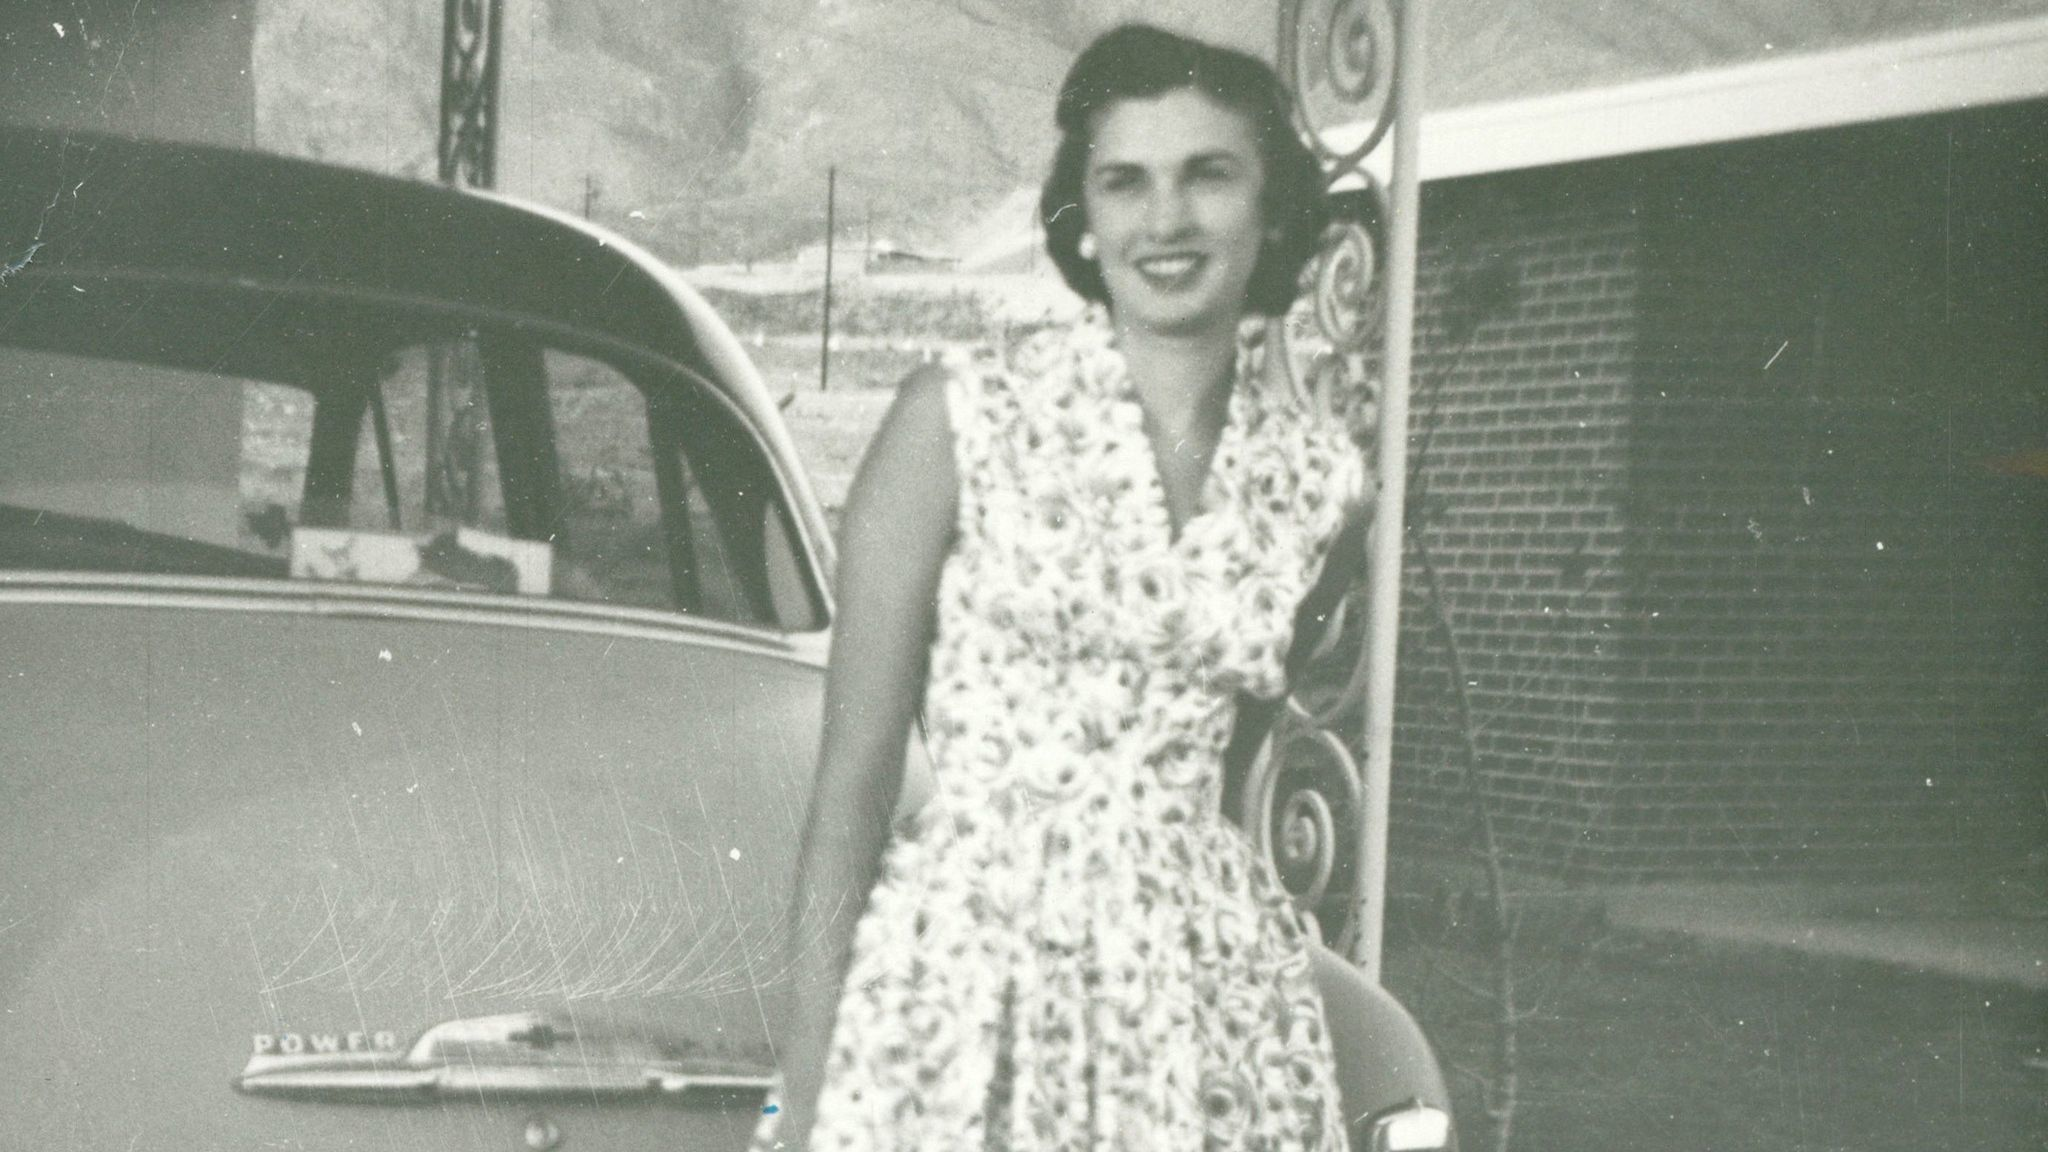 Edith Eger in the late 1950s, about 15 years after she was liberated from Auschwitz and just before she decided to dedicate her life to psychology.